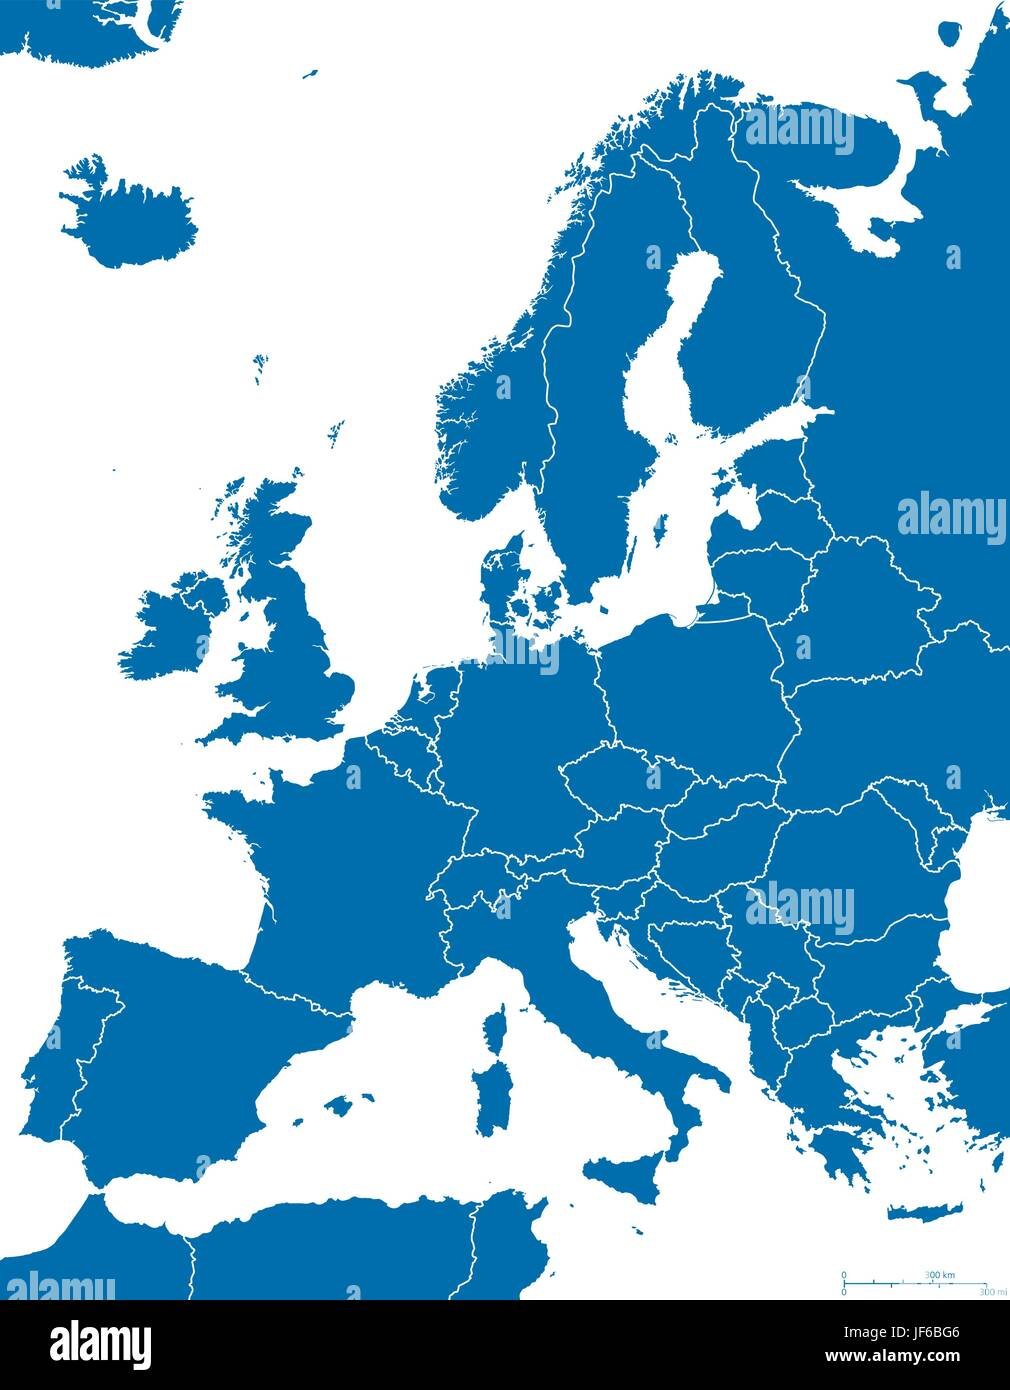 blue, isolated, europe, silhouette, outline, European Union, map, atlas, map of - Stock Image